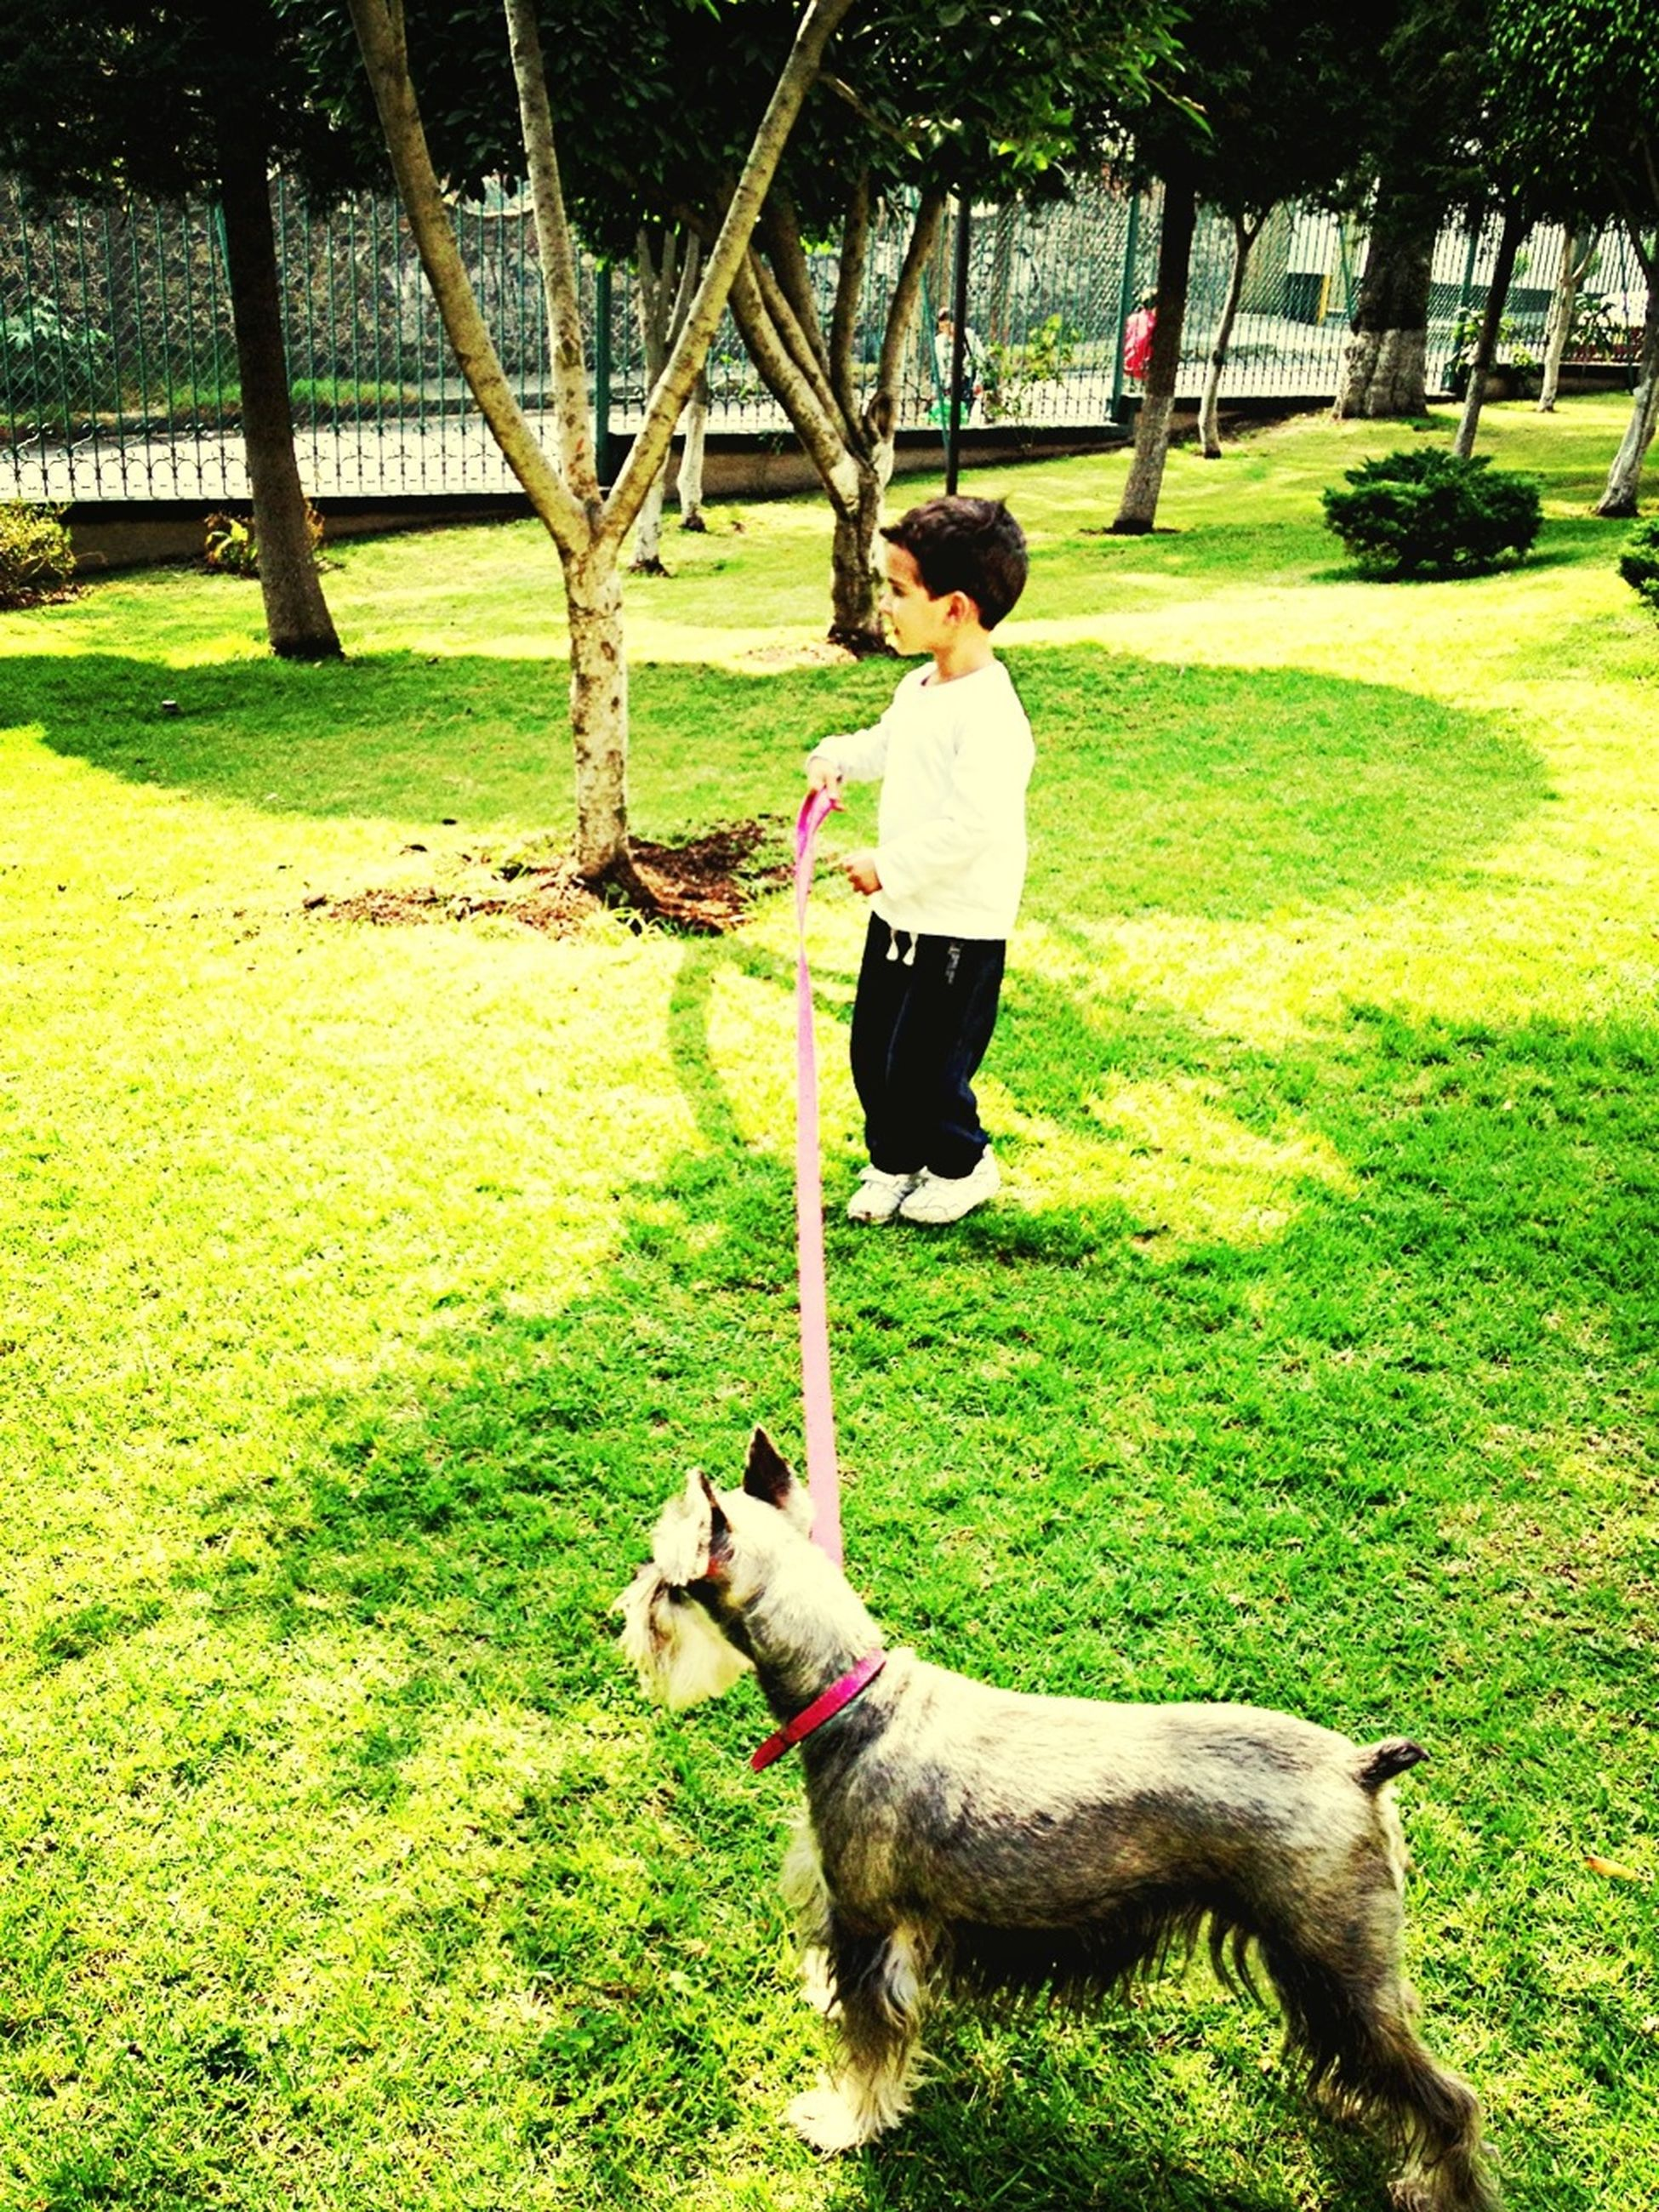 grass, full length, childhood, lifestyles, leisure activity, park - man made space, casual clothing, tree, elementary age, green color, grassy, boys, playing, field, park, playful, person, girls